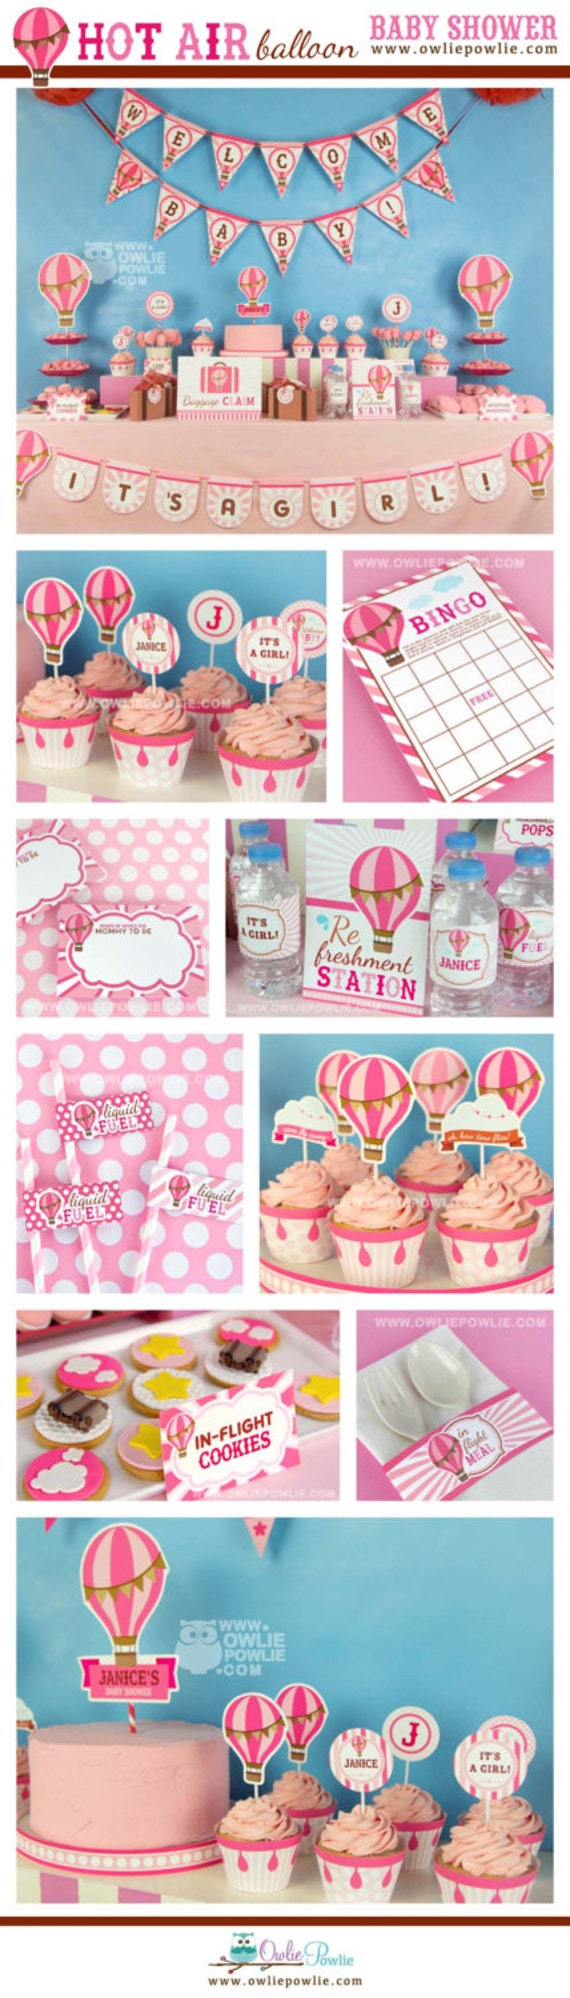 Hot Air Balloon Pink BABY Shower Party Printable Package ...